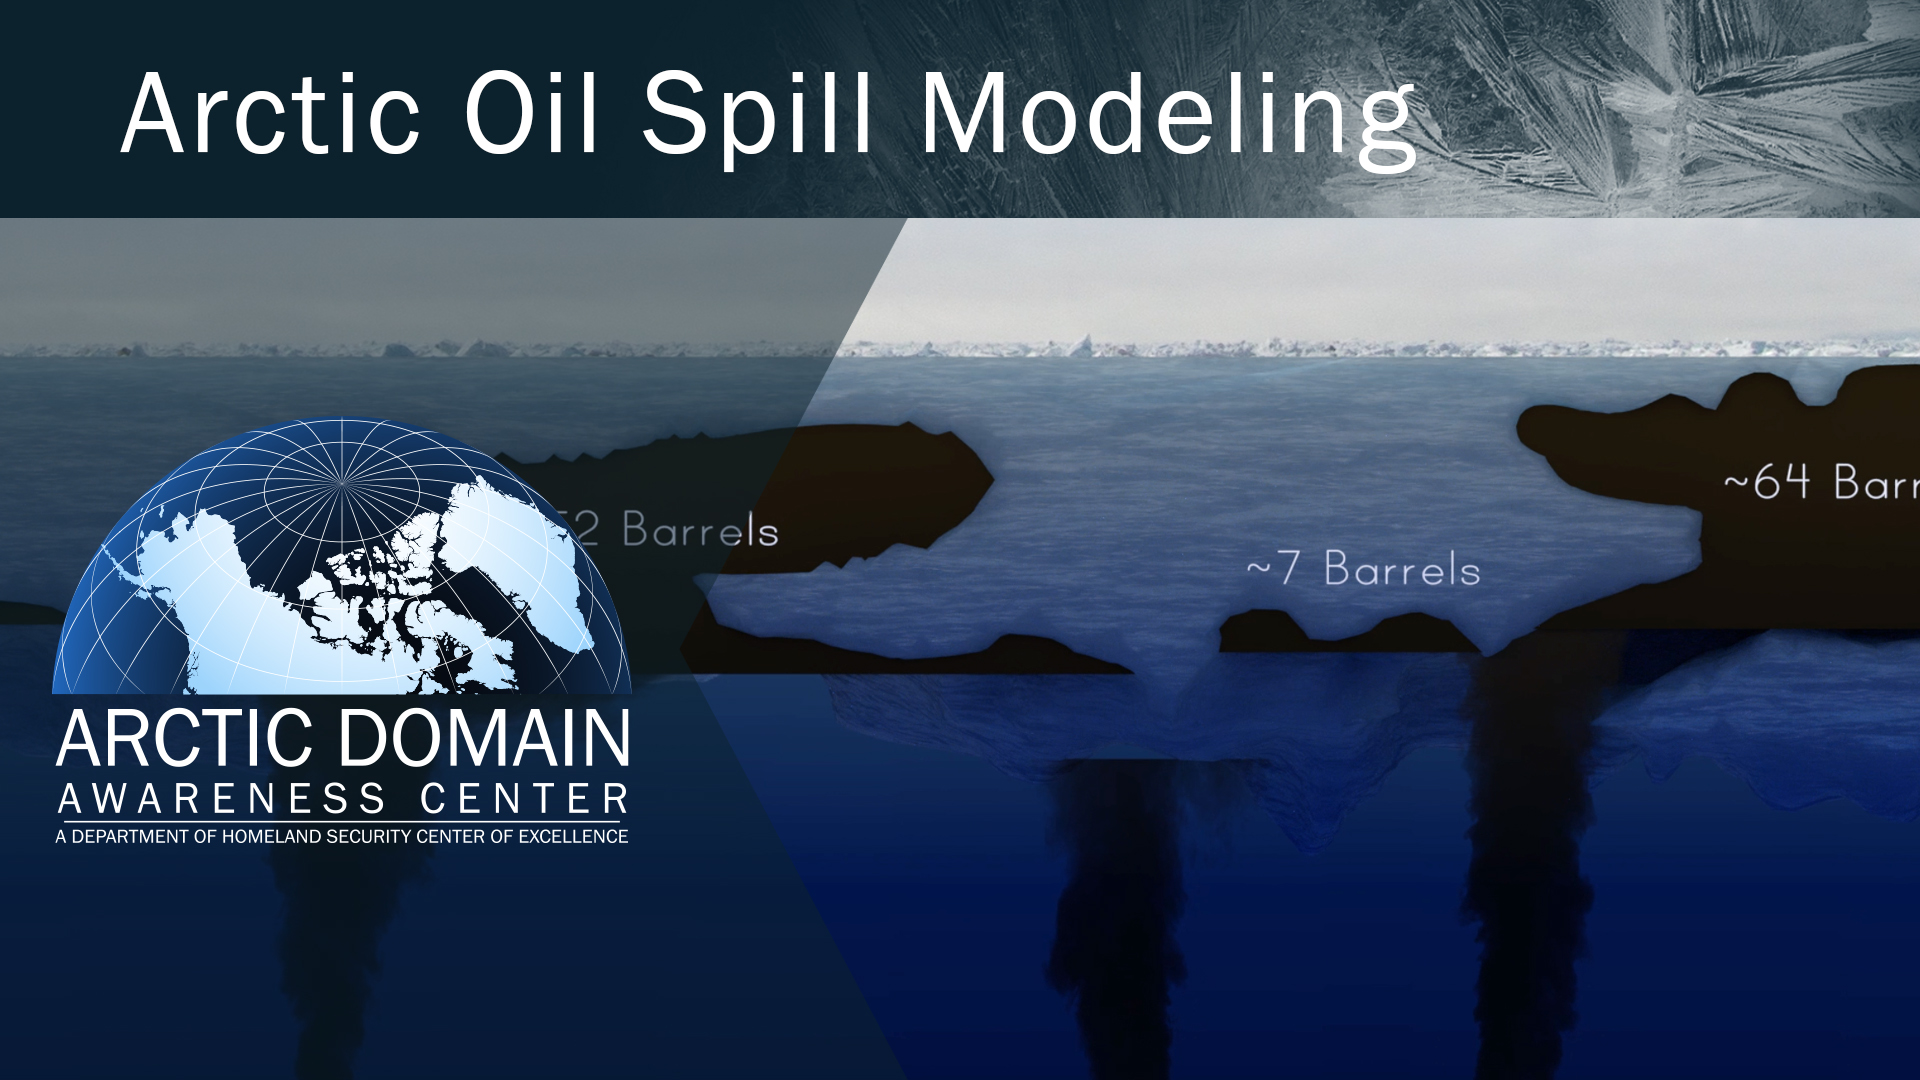 ADAC thumbnail showing oil spill graphic